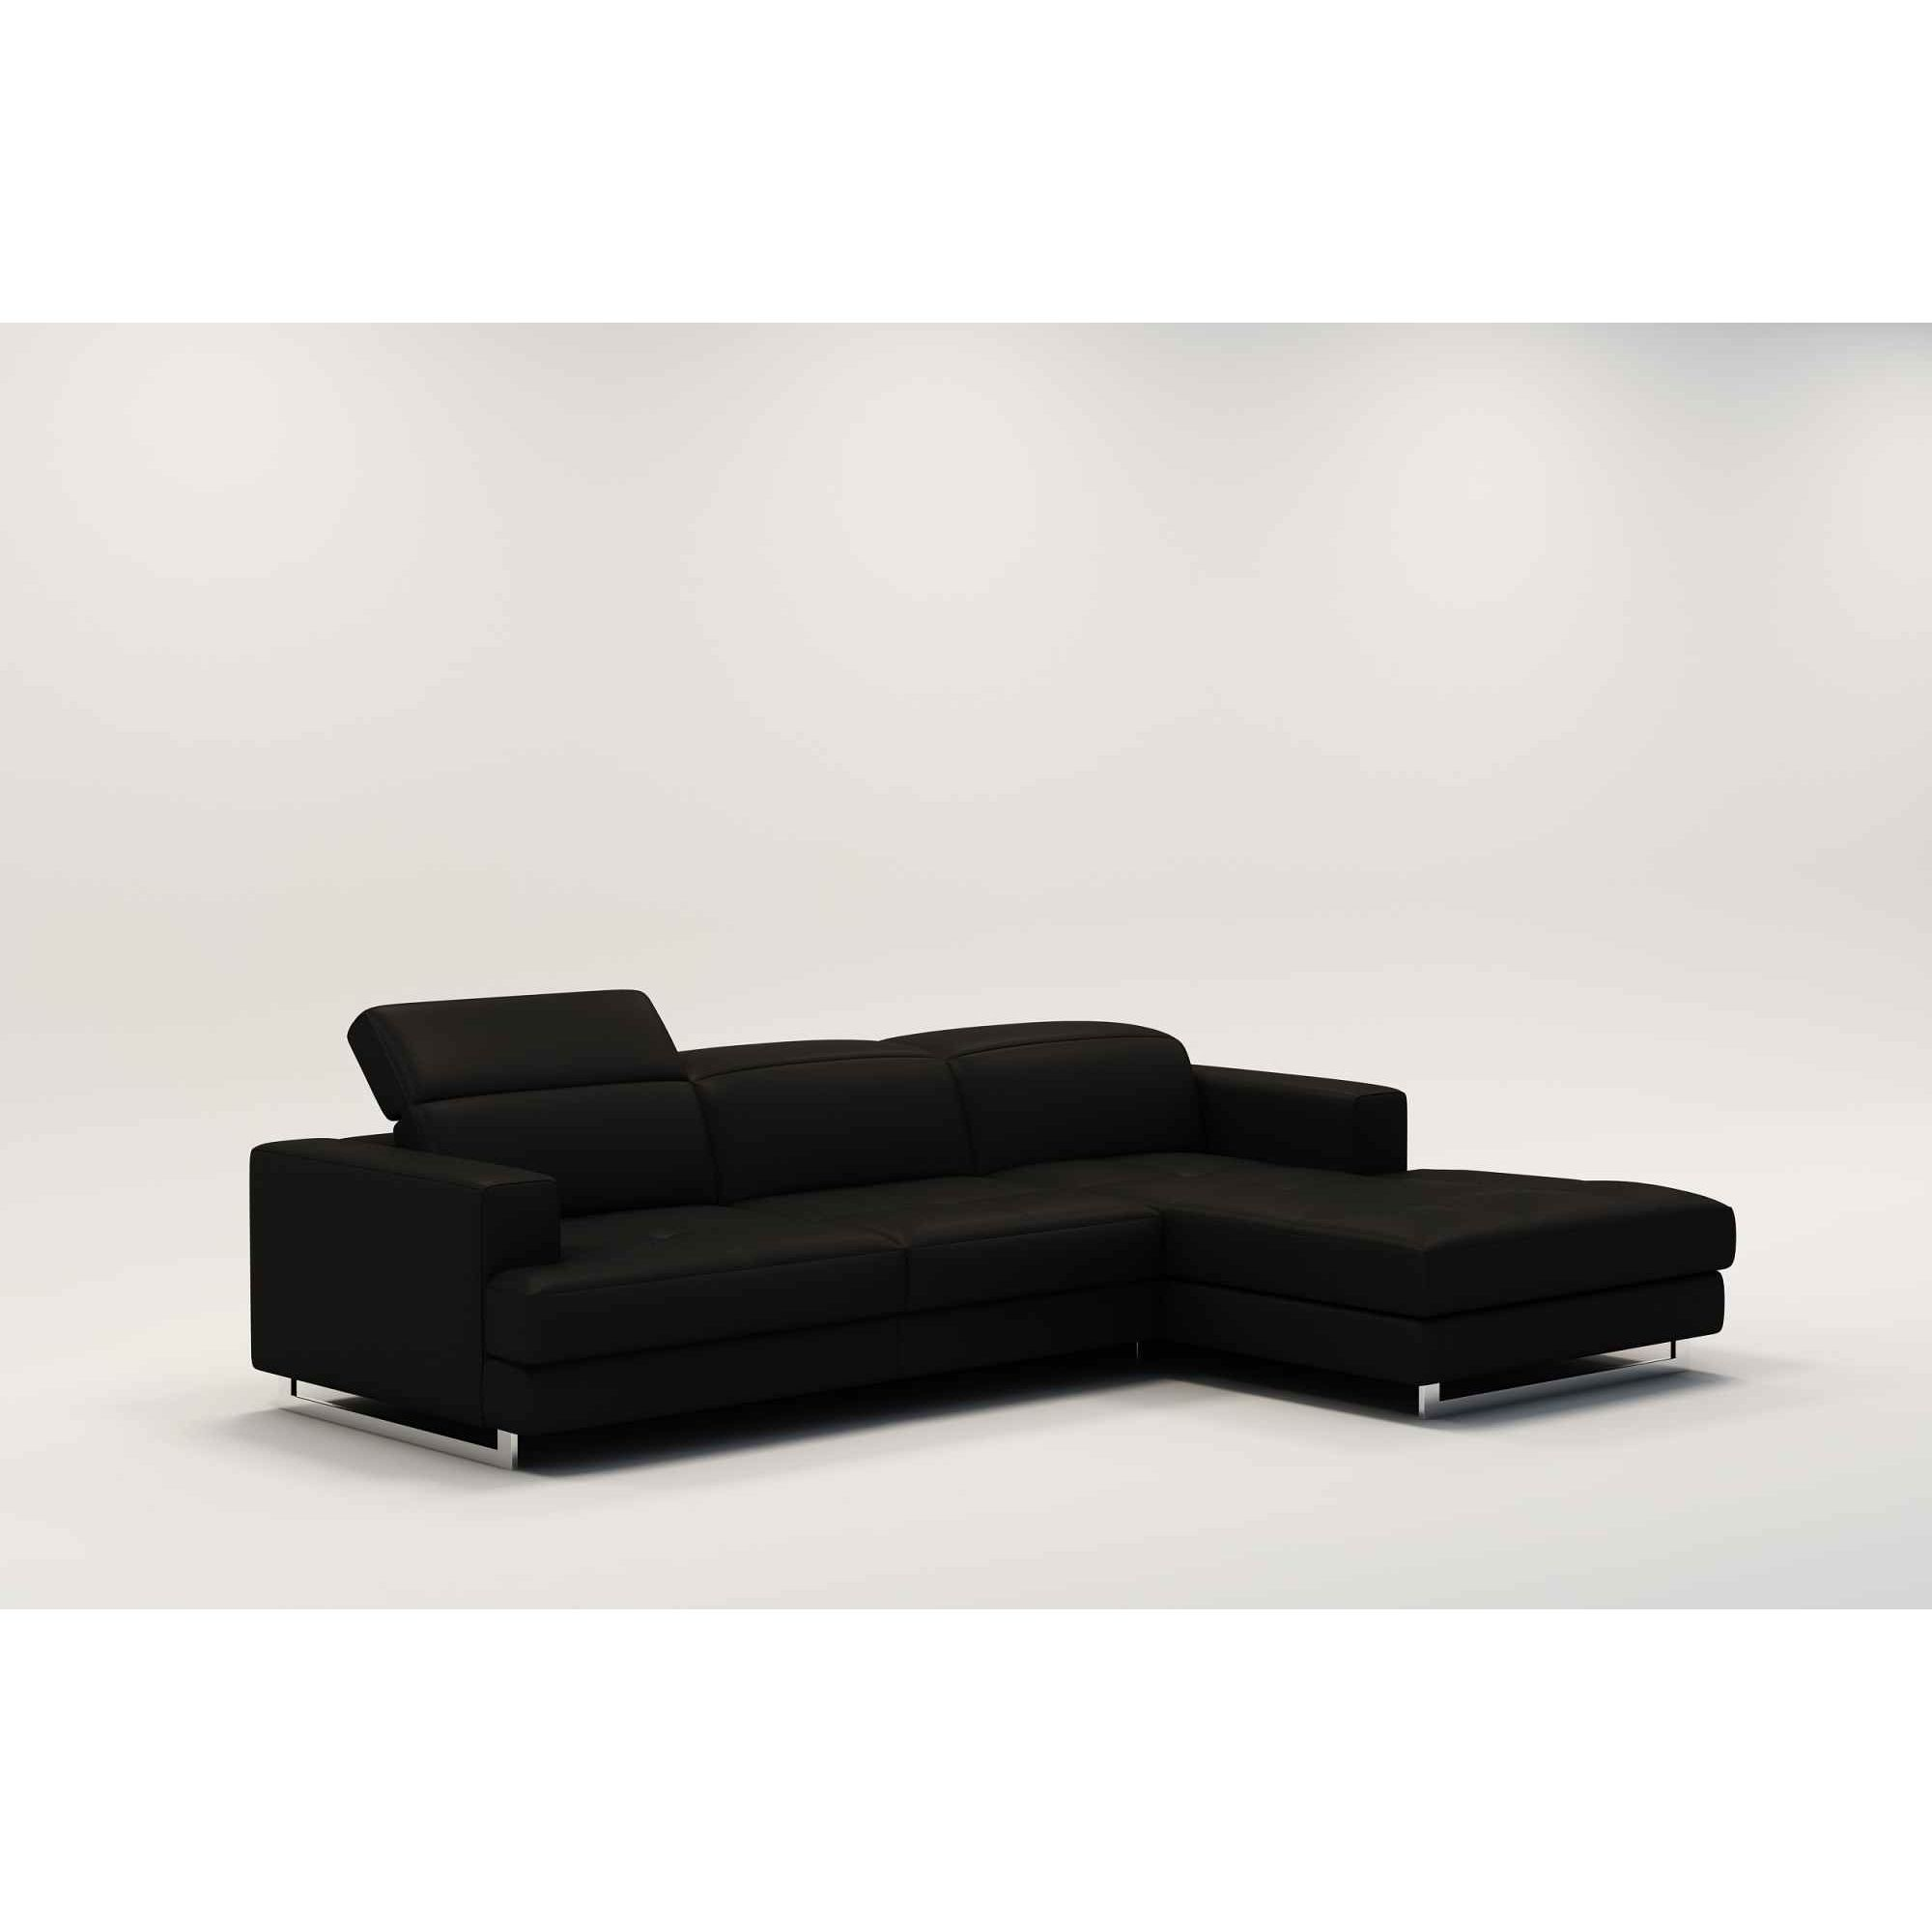 Deco in paris canape d angle design en cuir noir cris Canape d angle but